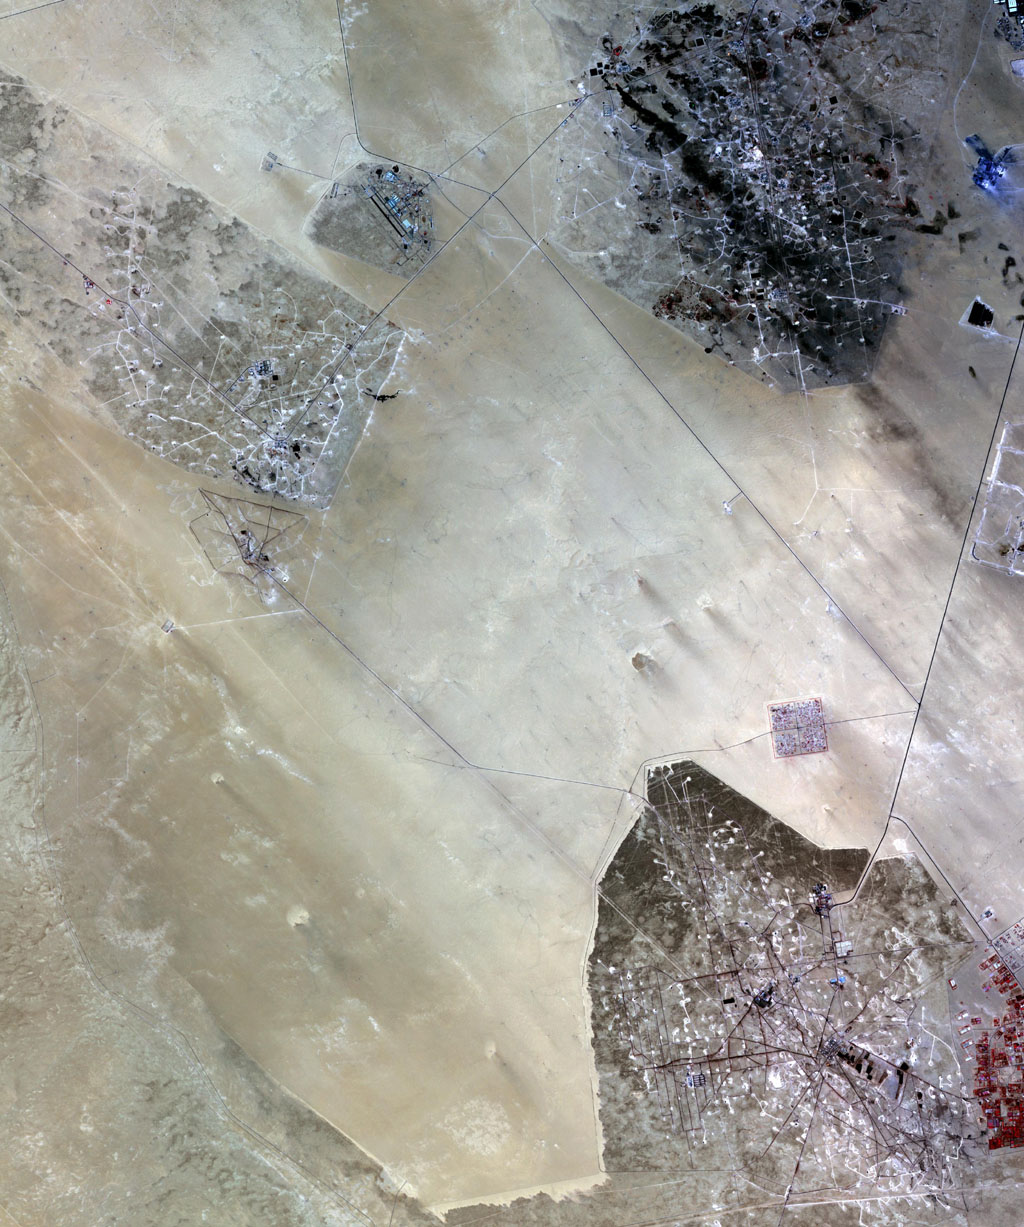 In the desert of southern Kuwait, three oil fields spread out across the empty landscape as seen by NASA's Terra spacecraft.